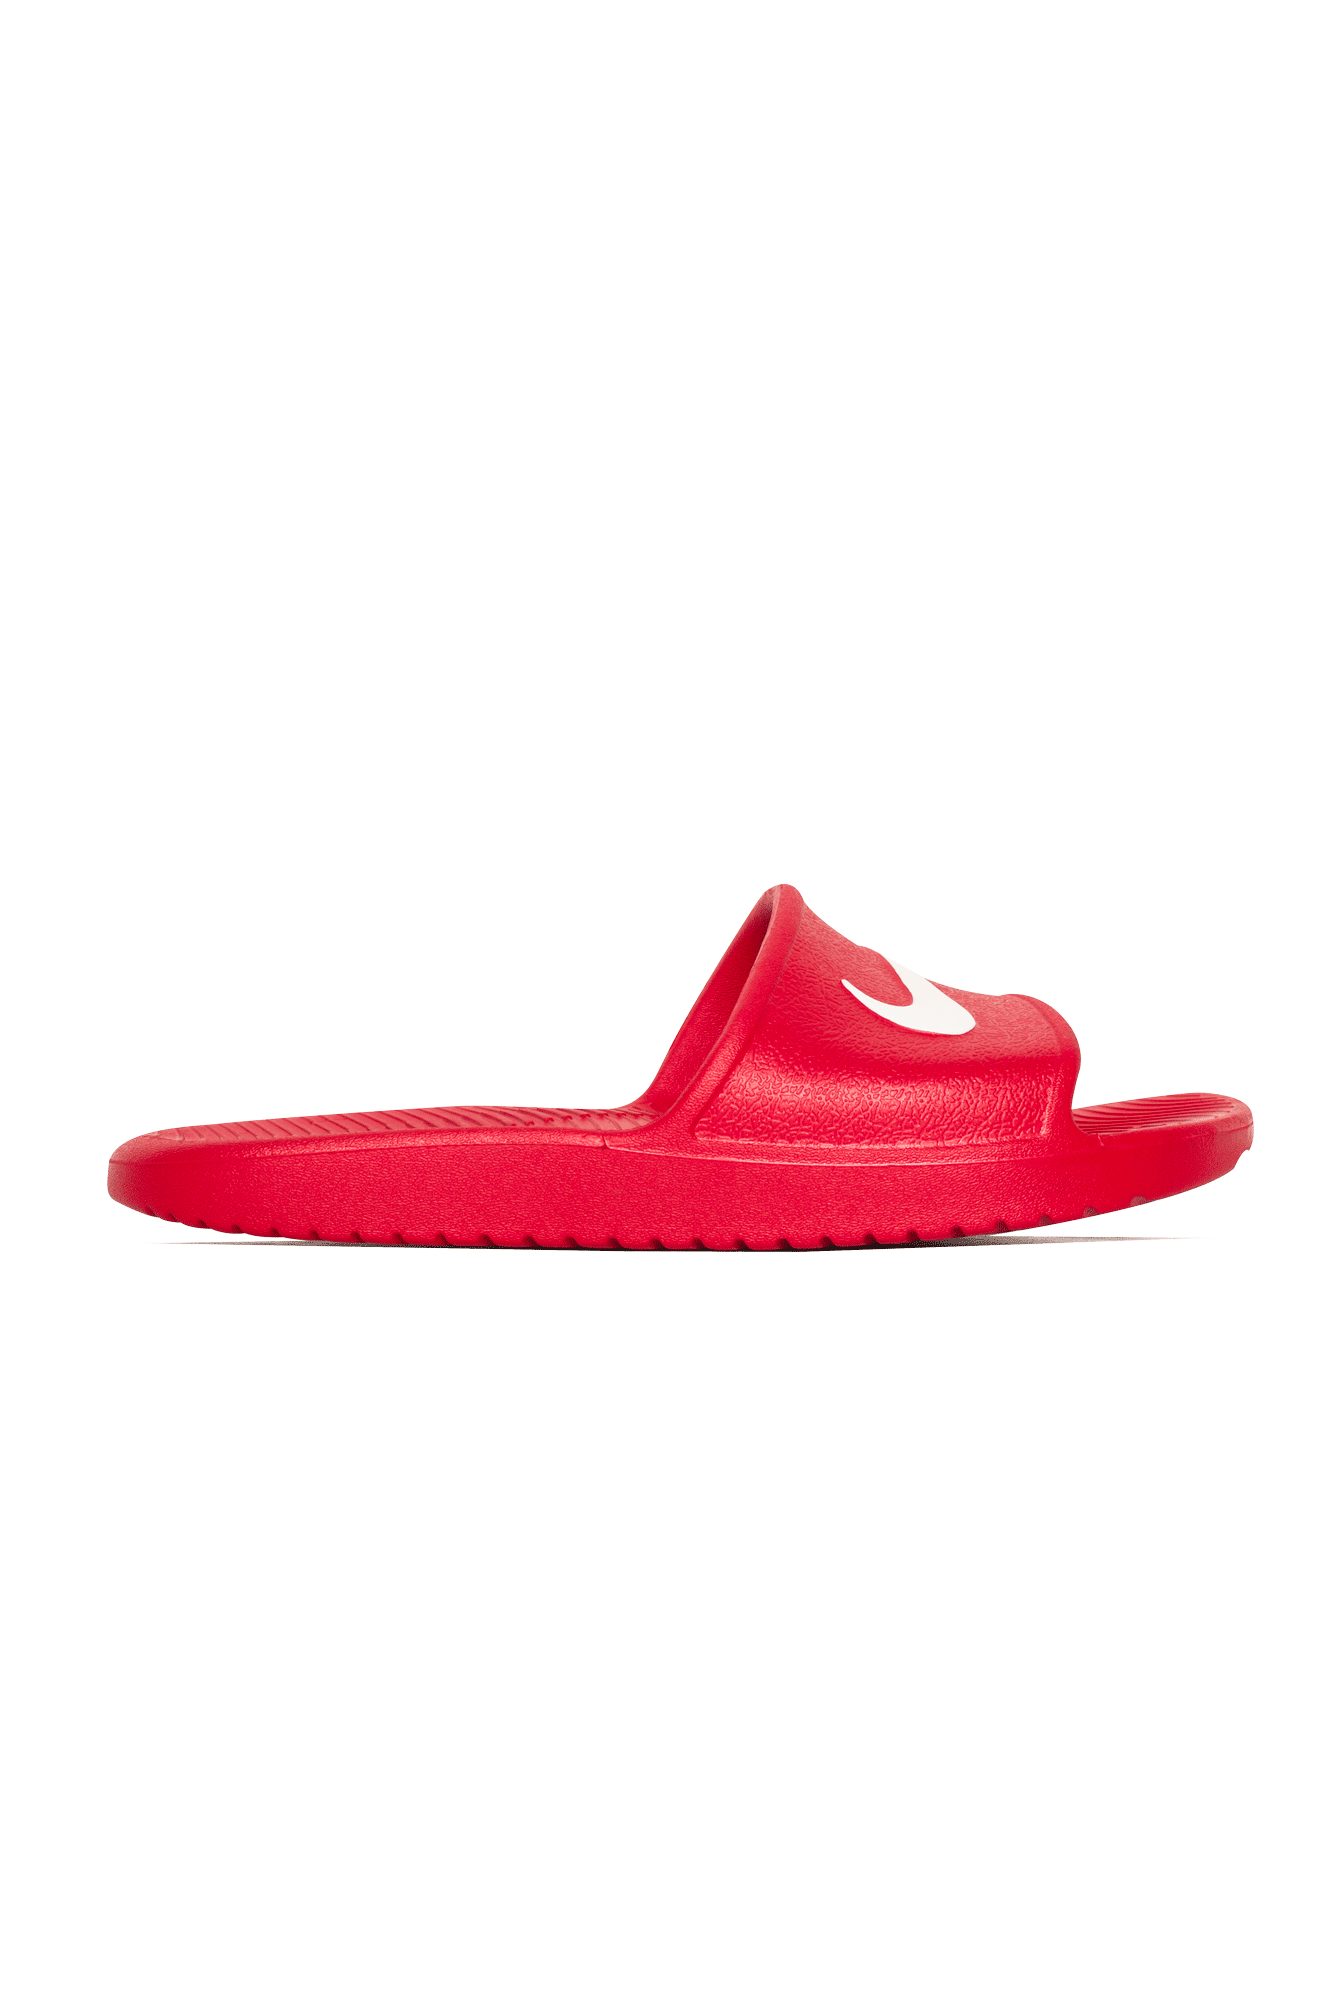 Nike Sandali & Ciabatte Kawa Shower Rosso Rosso - One Block Down